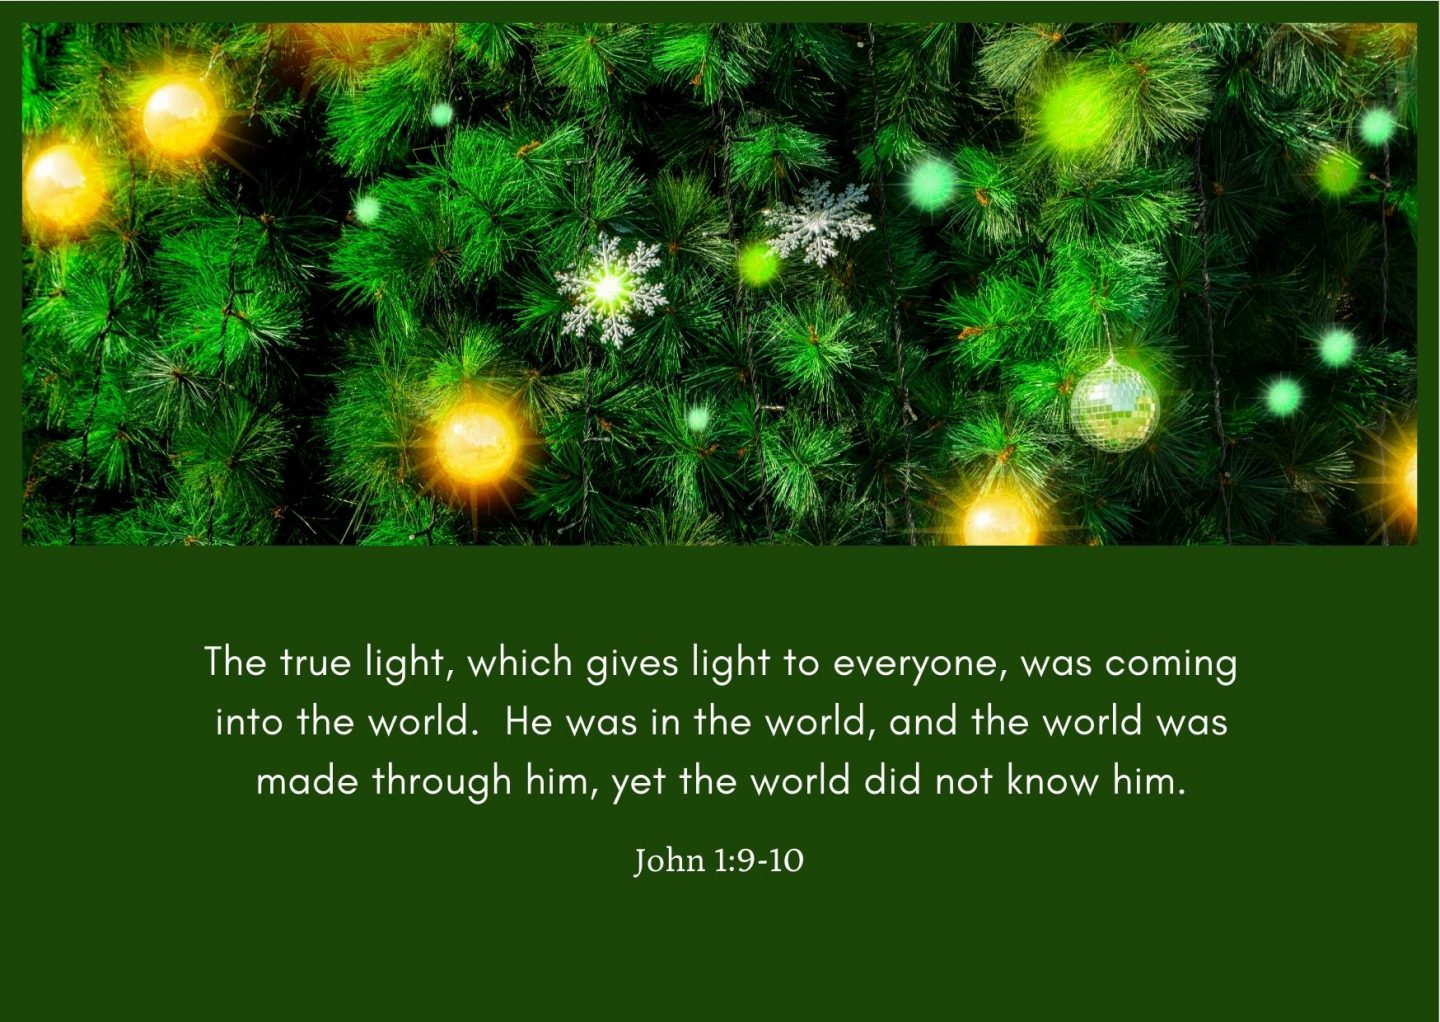 The true light, which gives light to everyone, was coming into the world. He was in the world, and the world was made through him, yet the world did not know him. John 1:9-10